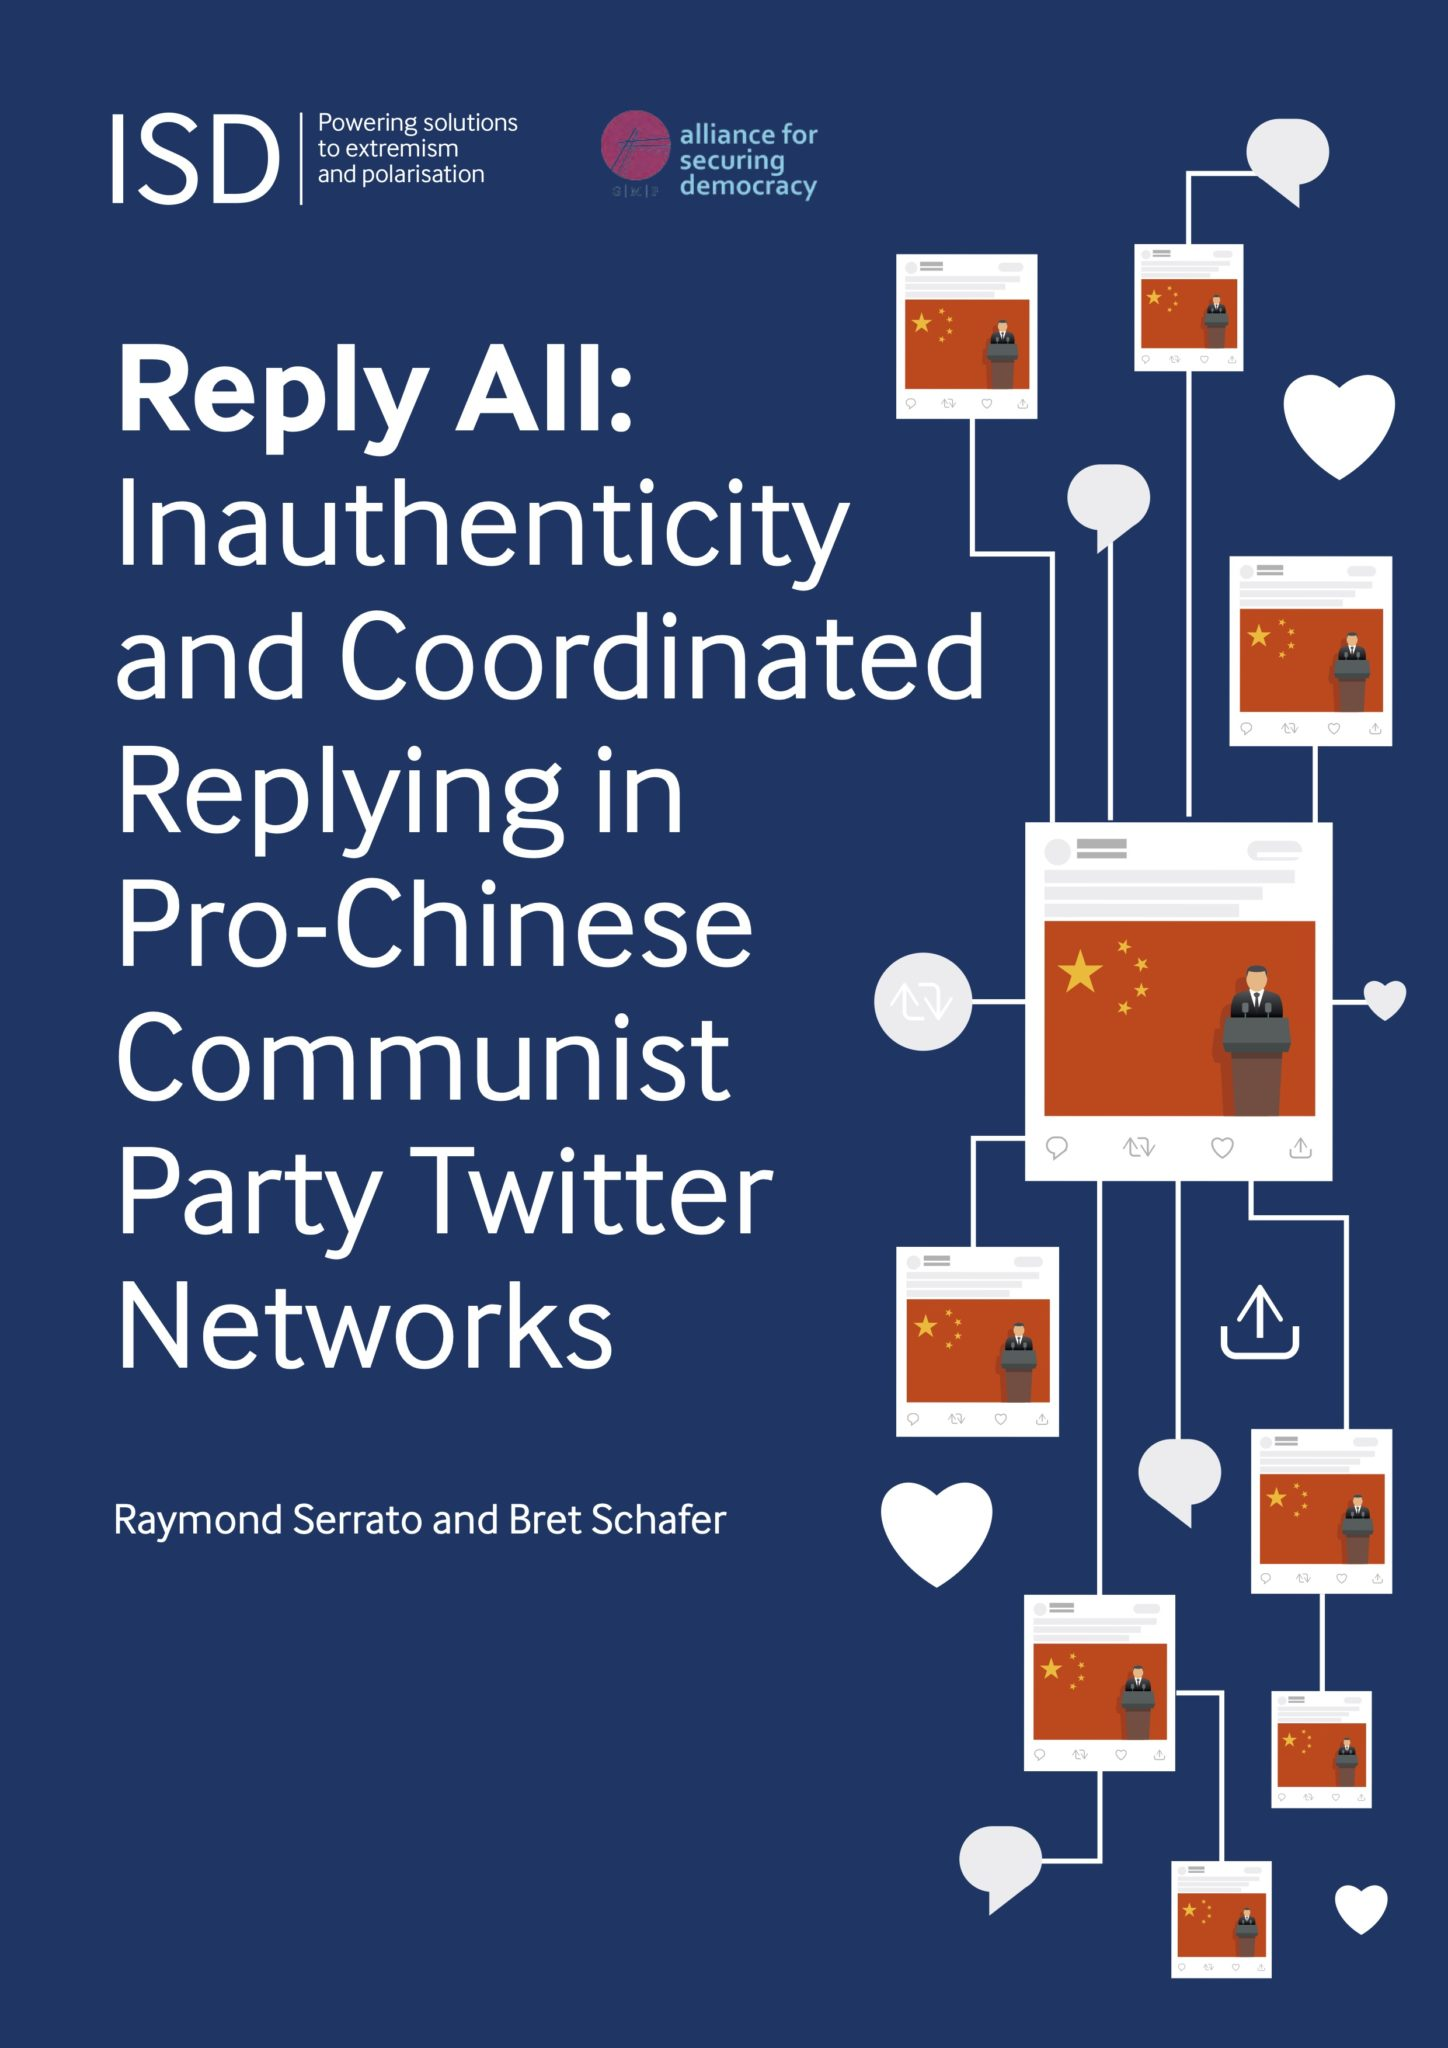 Reply All: Inauthenticity and Coordinated Replying in pro-Chinese Communist Party Twitter Networks